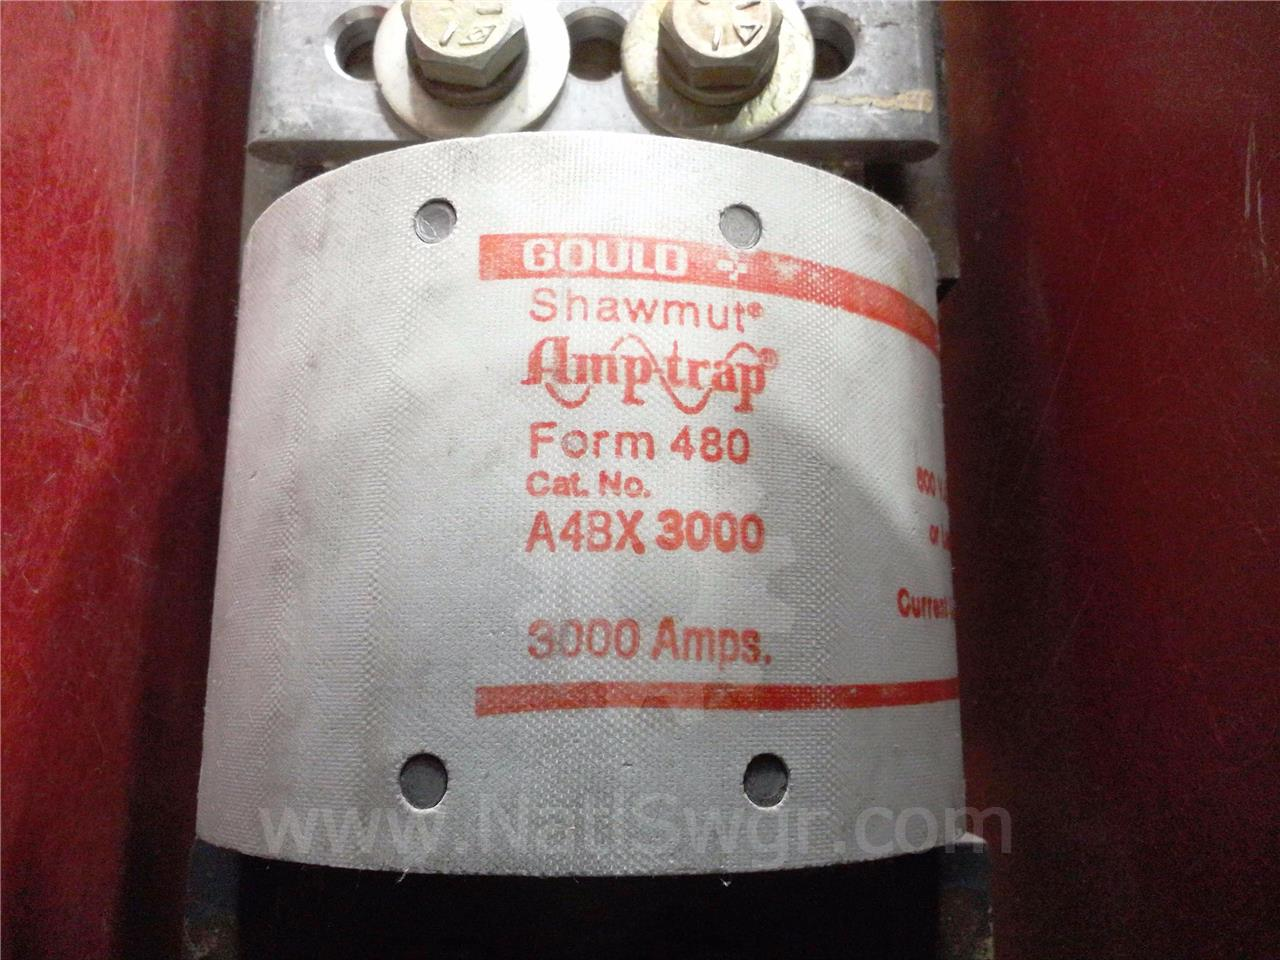 A4BX3000 3000A SHAWMUT CURRENT LIMITING FUSE FOR RLF